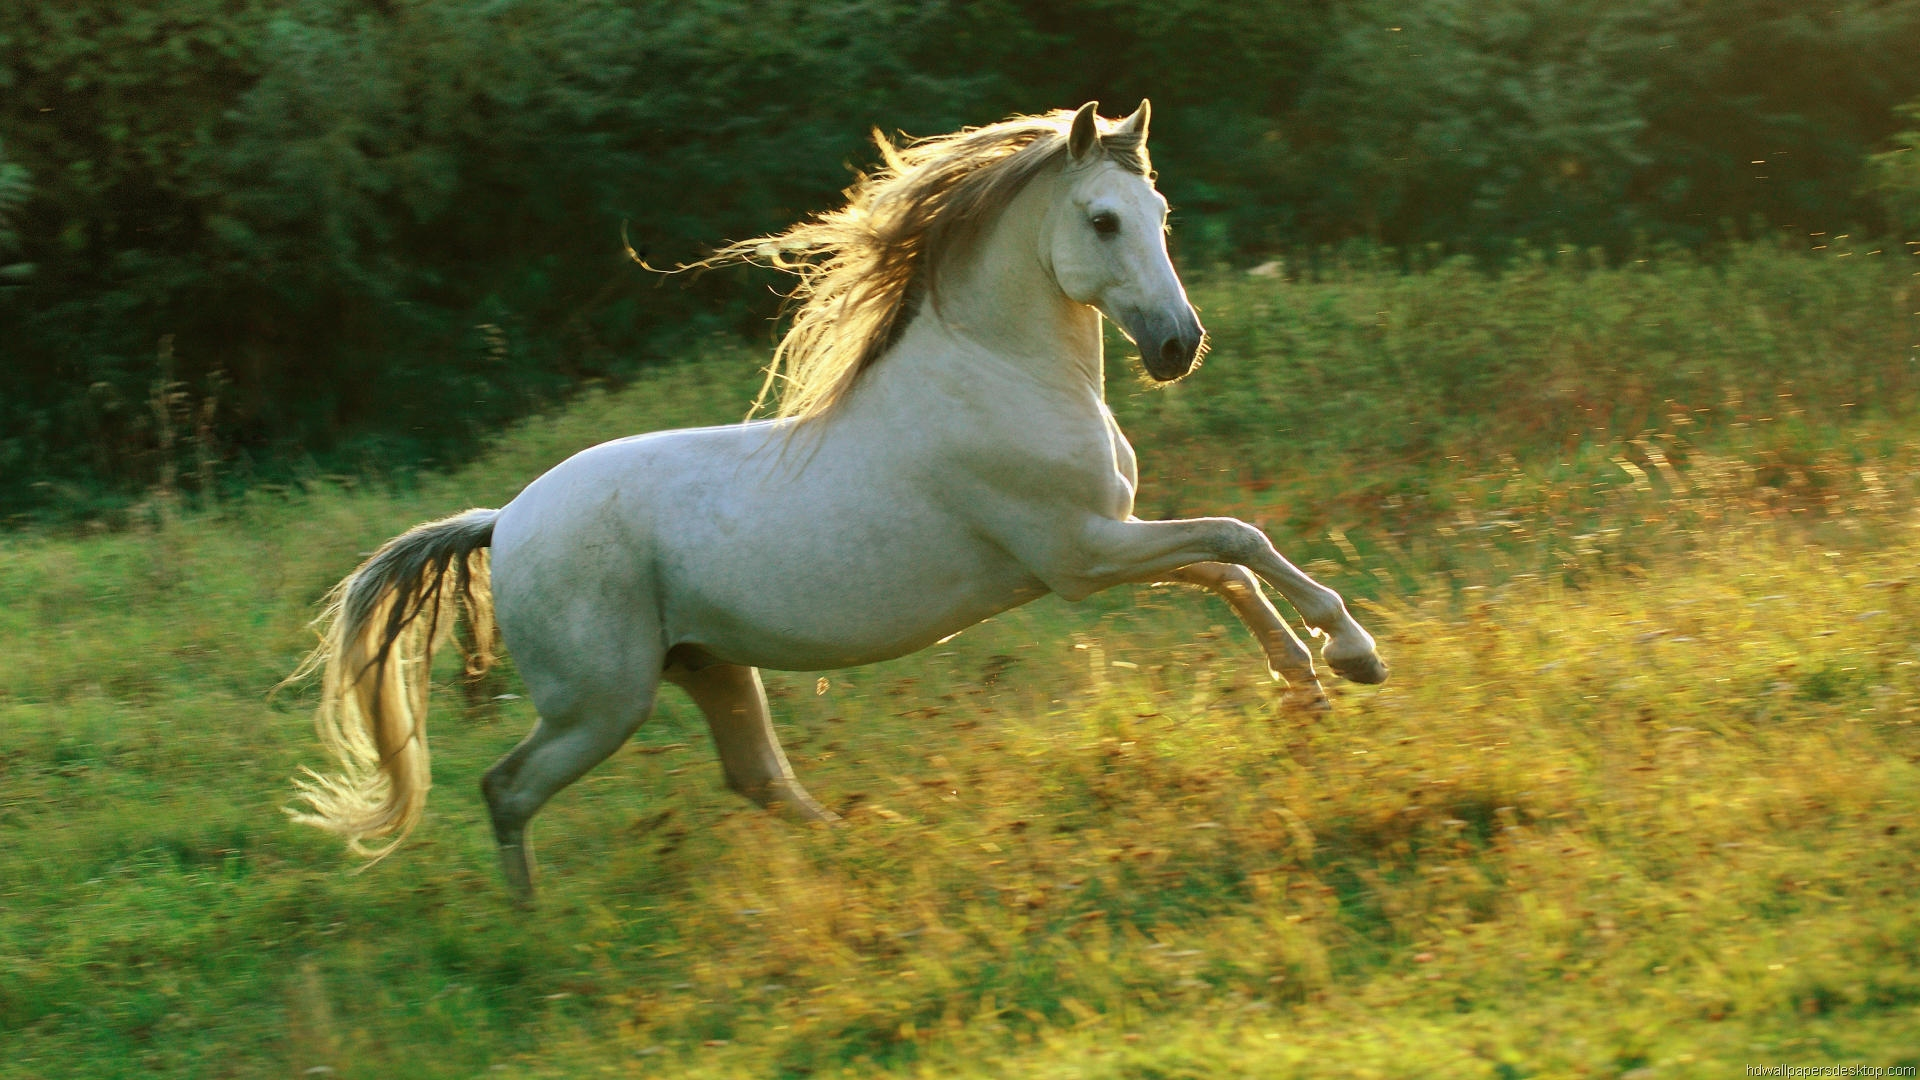 White horse hd    Unique Nature HD  HD Wallpaper